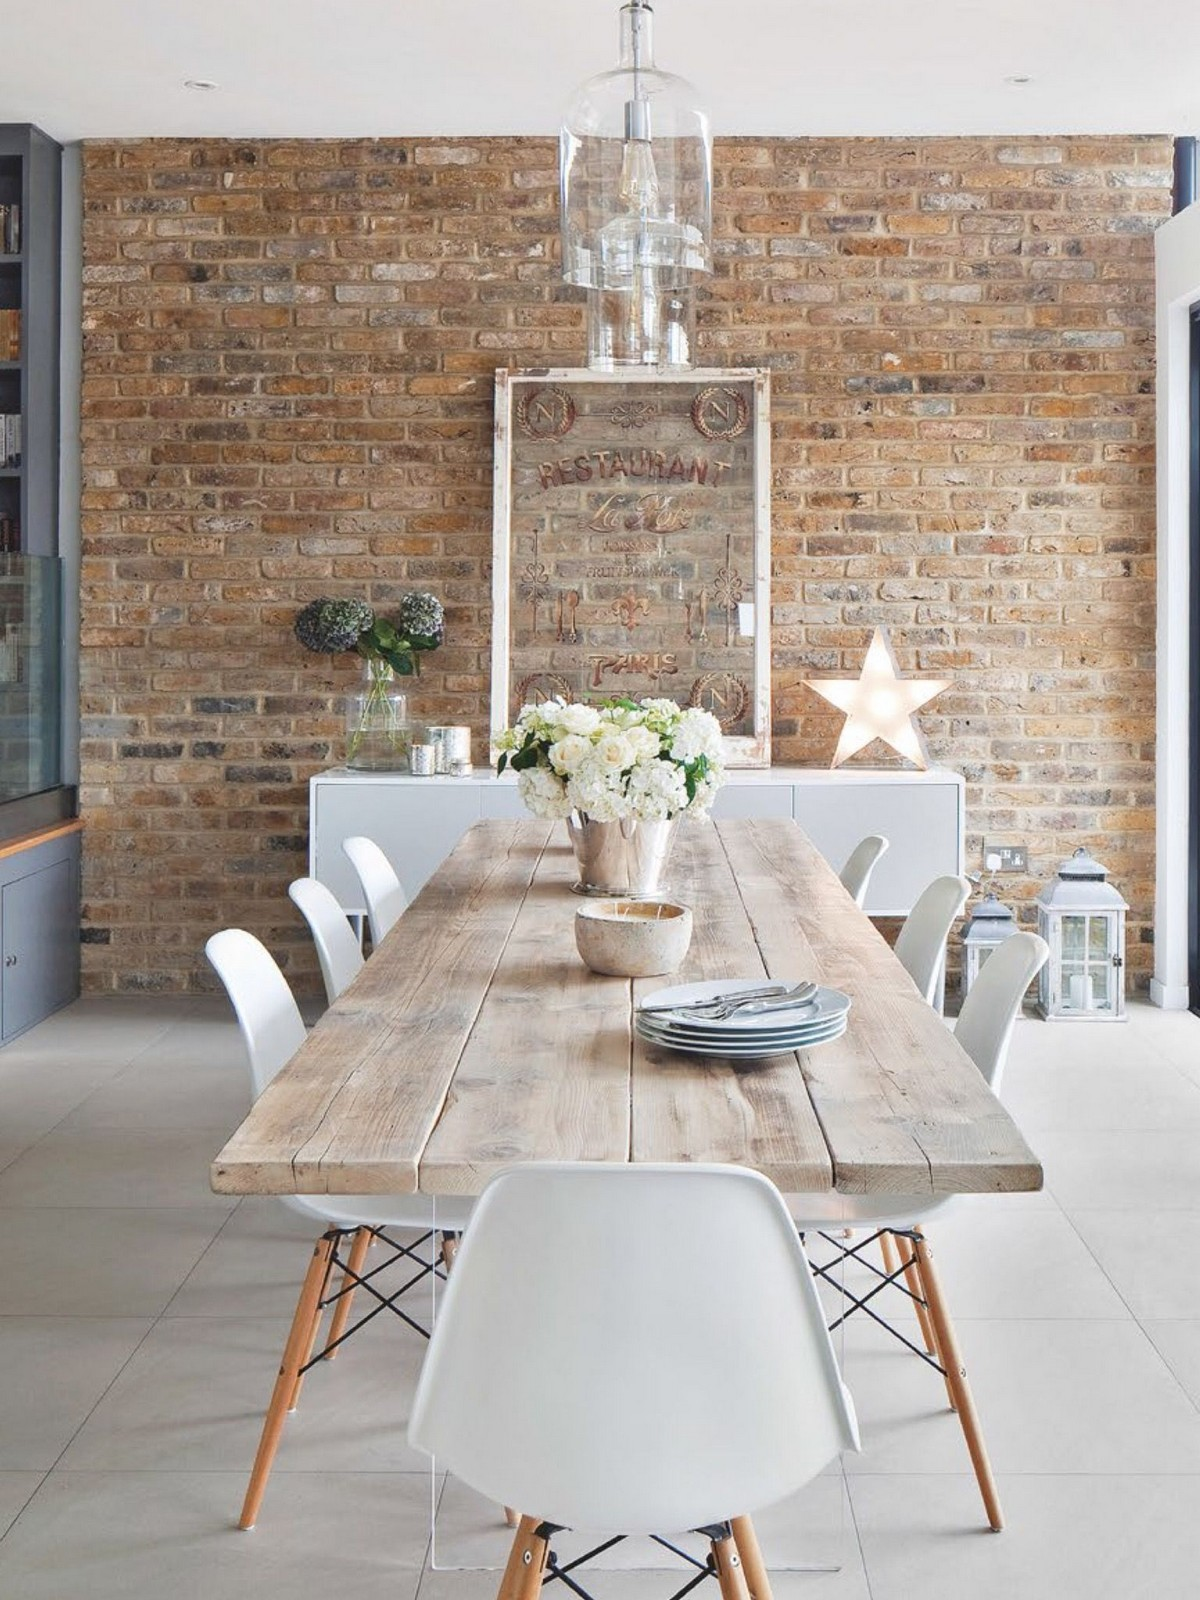 Modern Dining Room Inspirations To Look For in 2019 modern dining room Modern Dining Room Inspirations To Look For in 2019 5